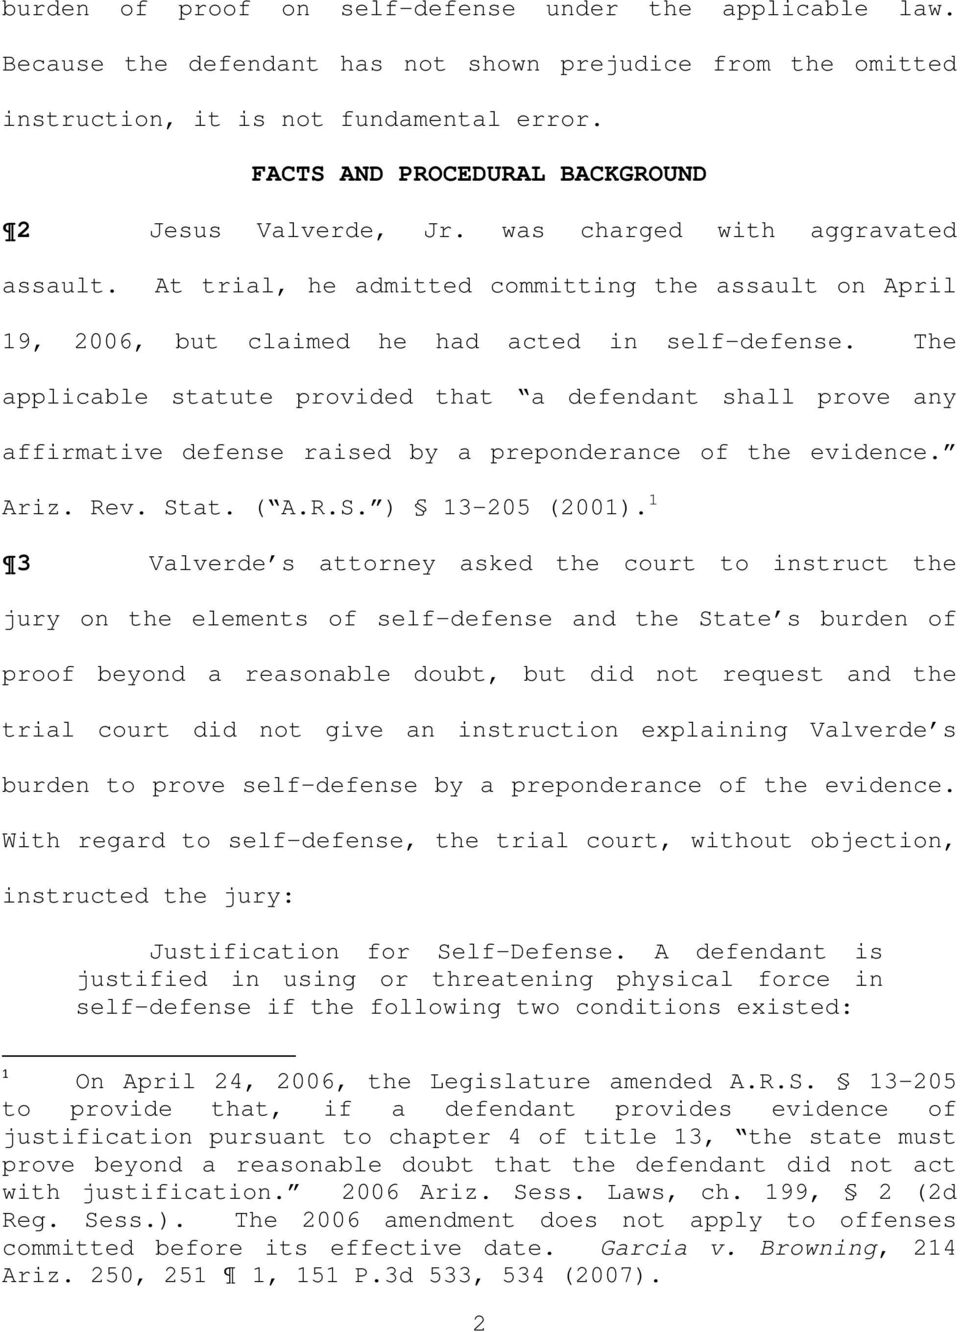 The applicable statute provided that a defendant shall prove any affirmative defense raised by a preponderance of the evidence. Ariz. Rev. Stat. ( A.R.S. ) 13-205 (2001).